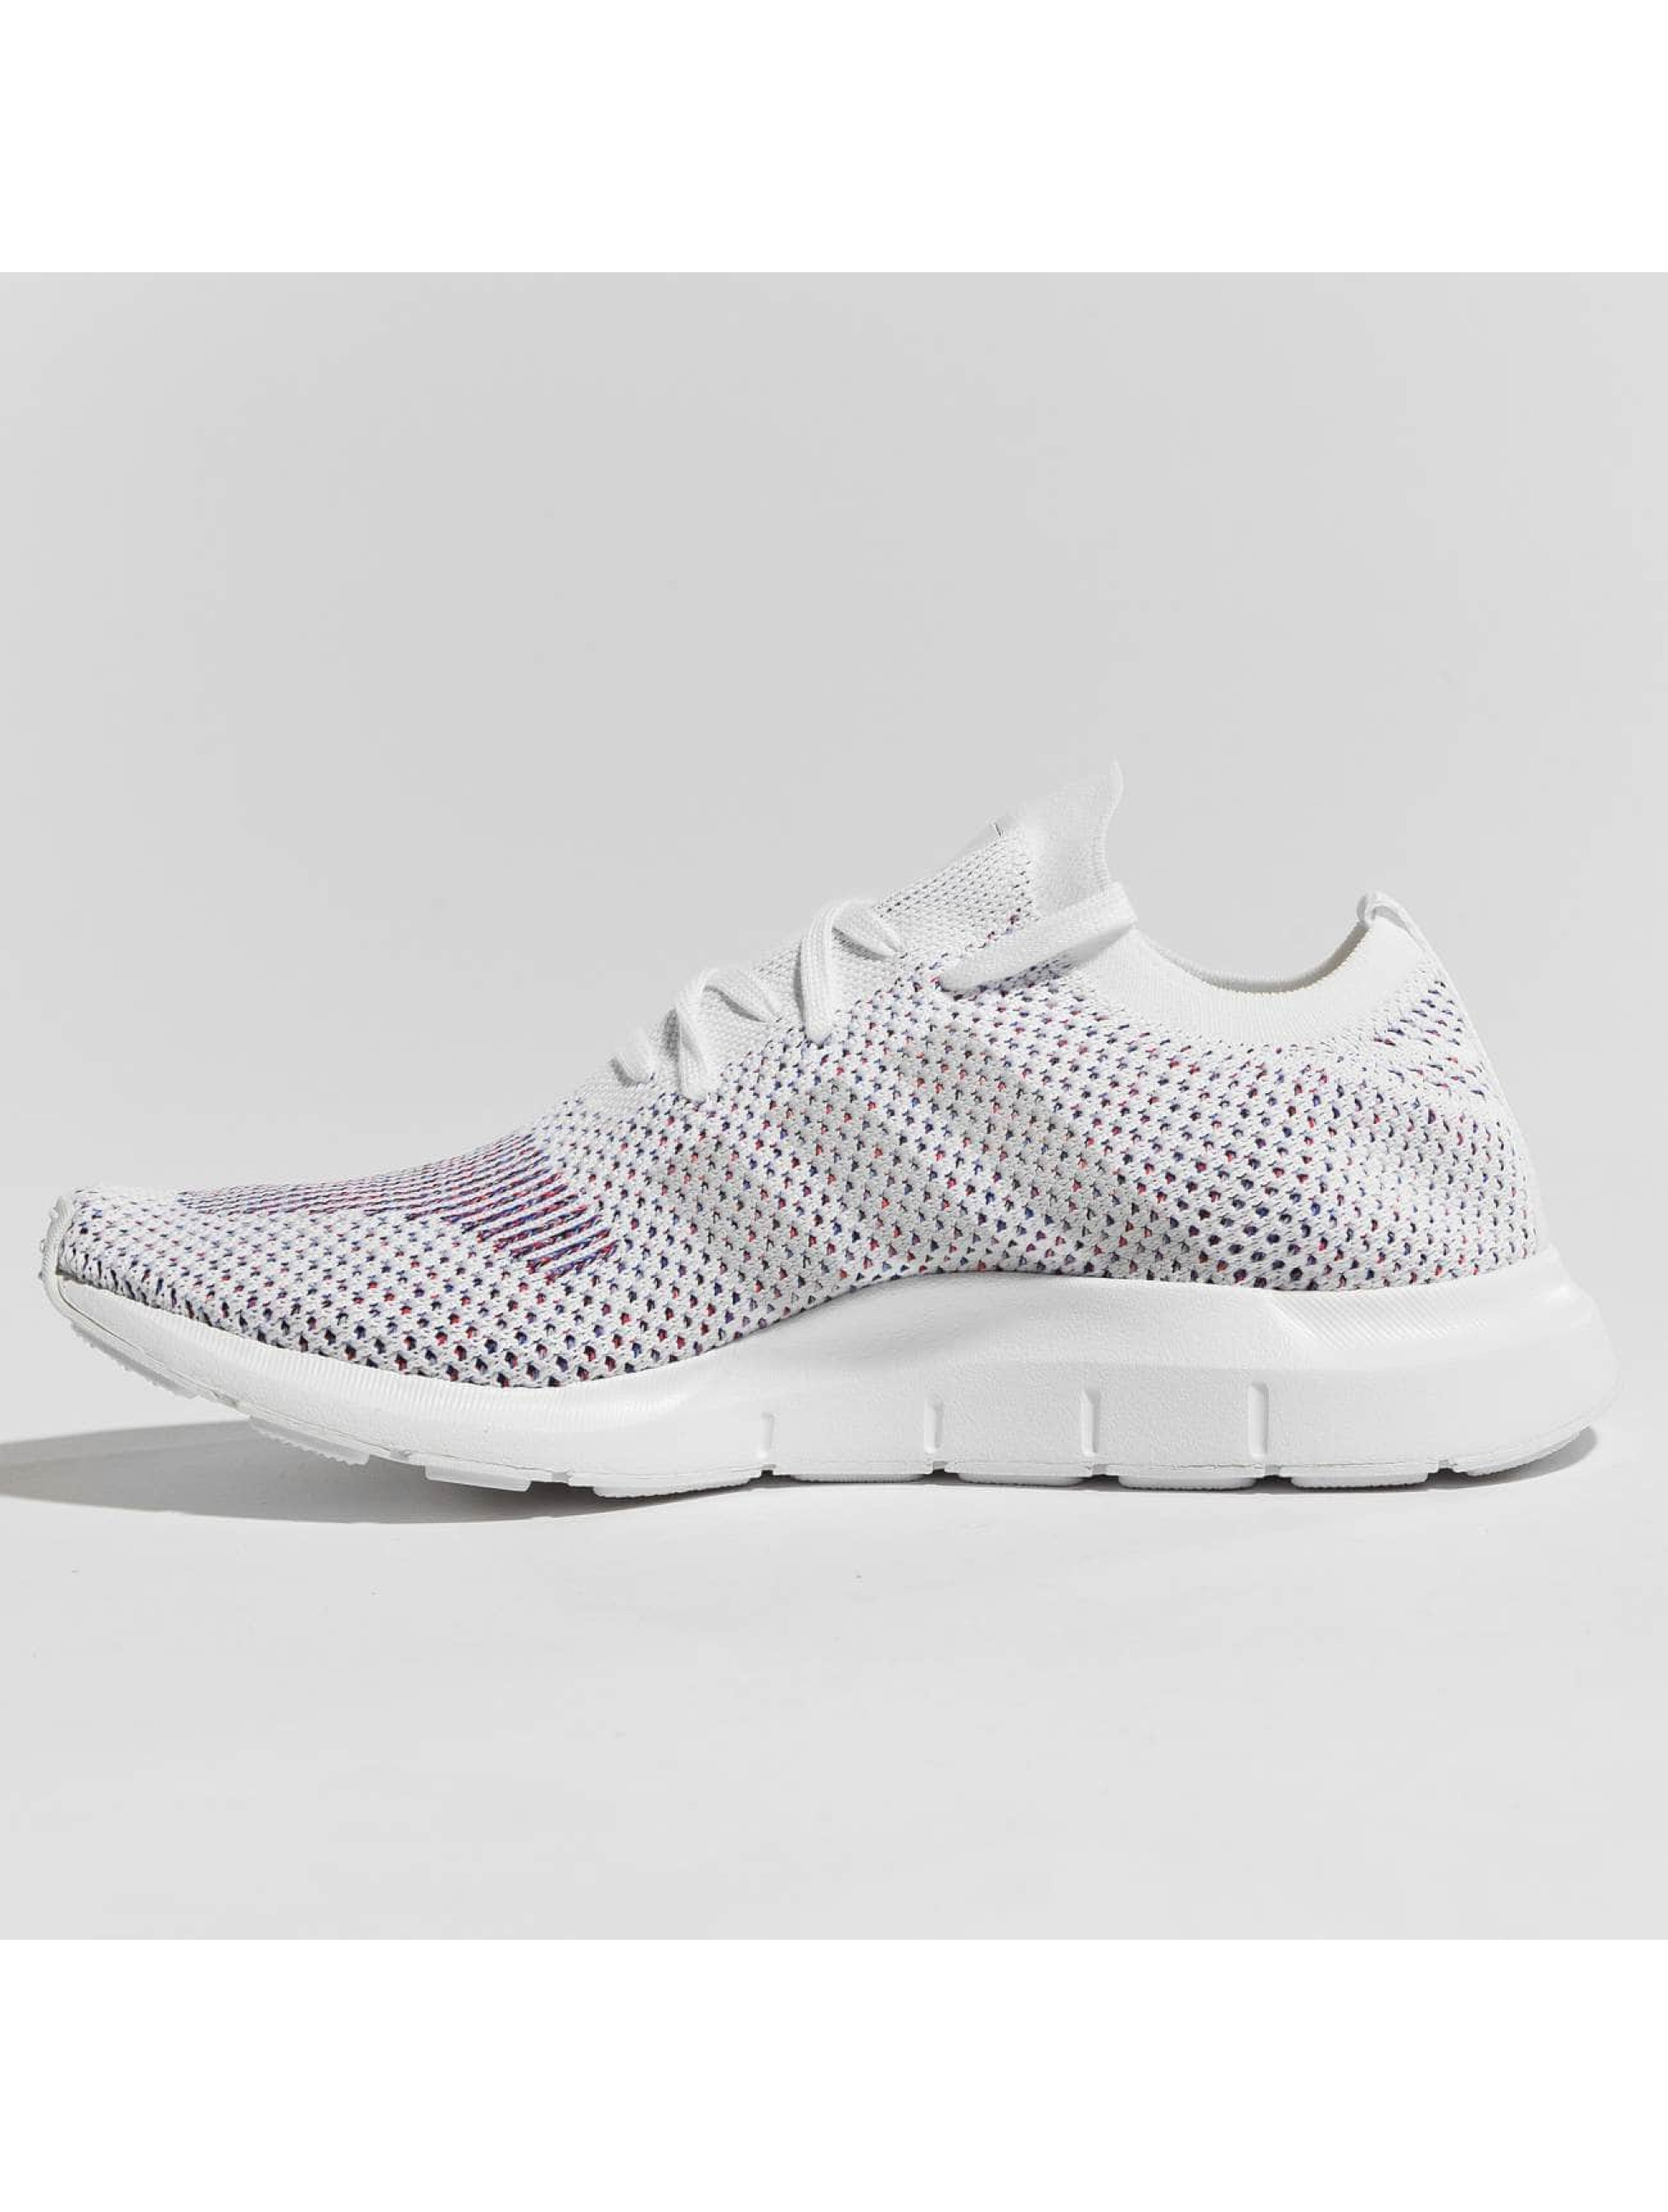 adidas originals Sneaker originals Swift Run Primeknit weiß